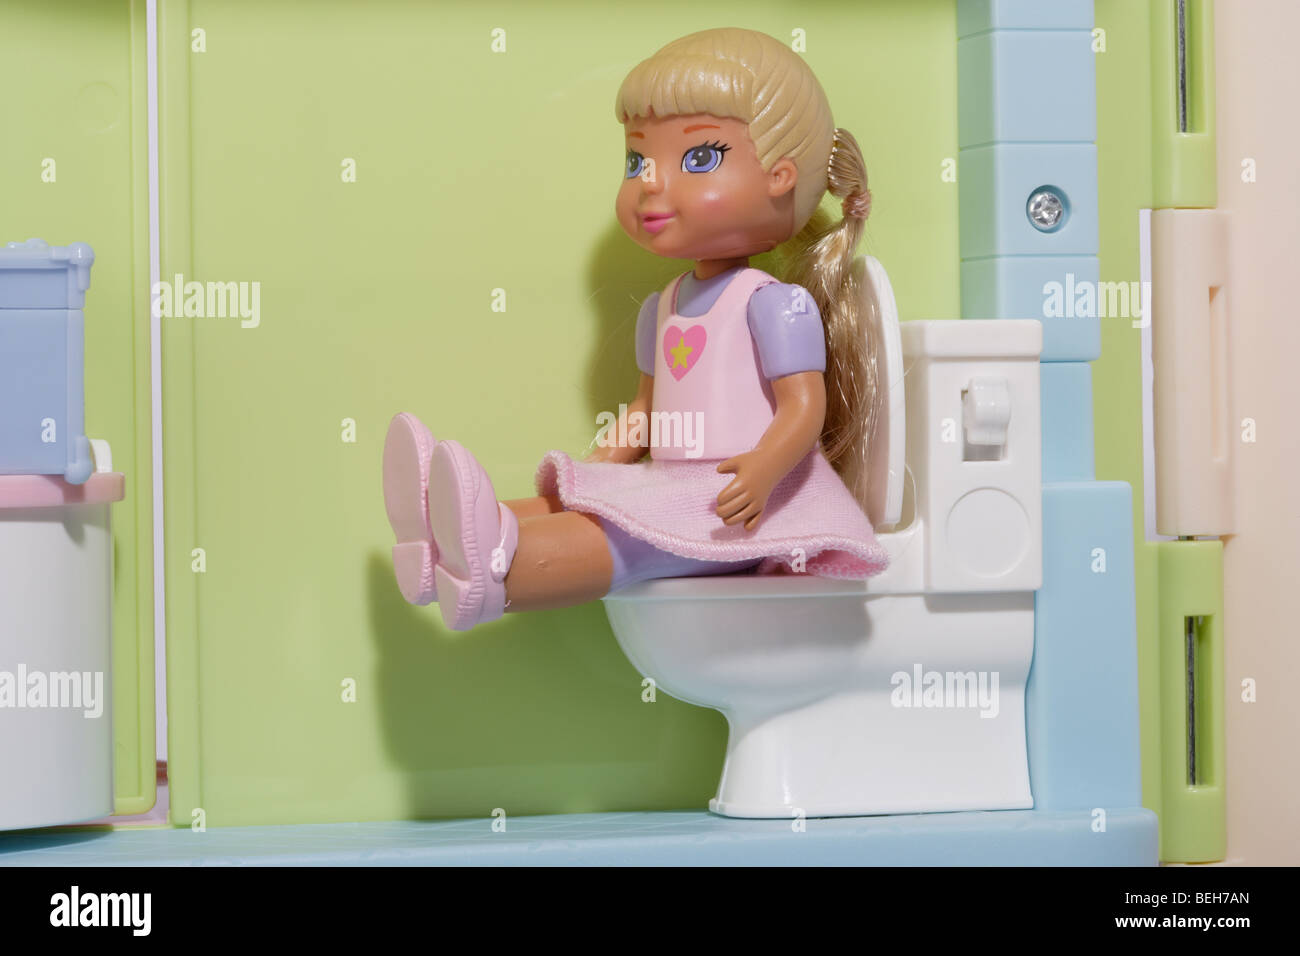 Girl child doll in the bathroom Stock Photo